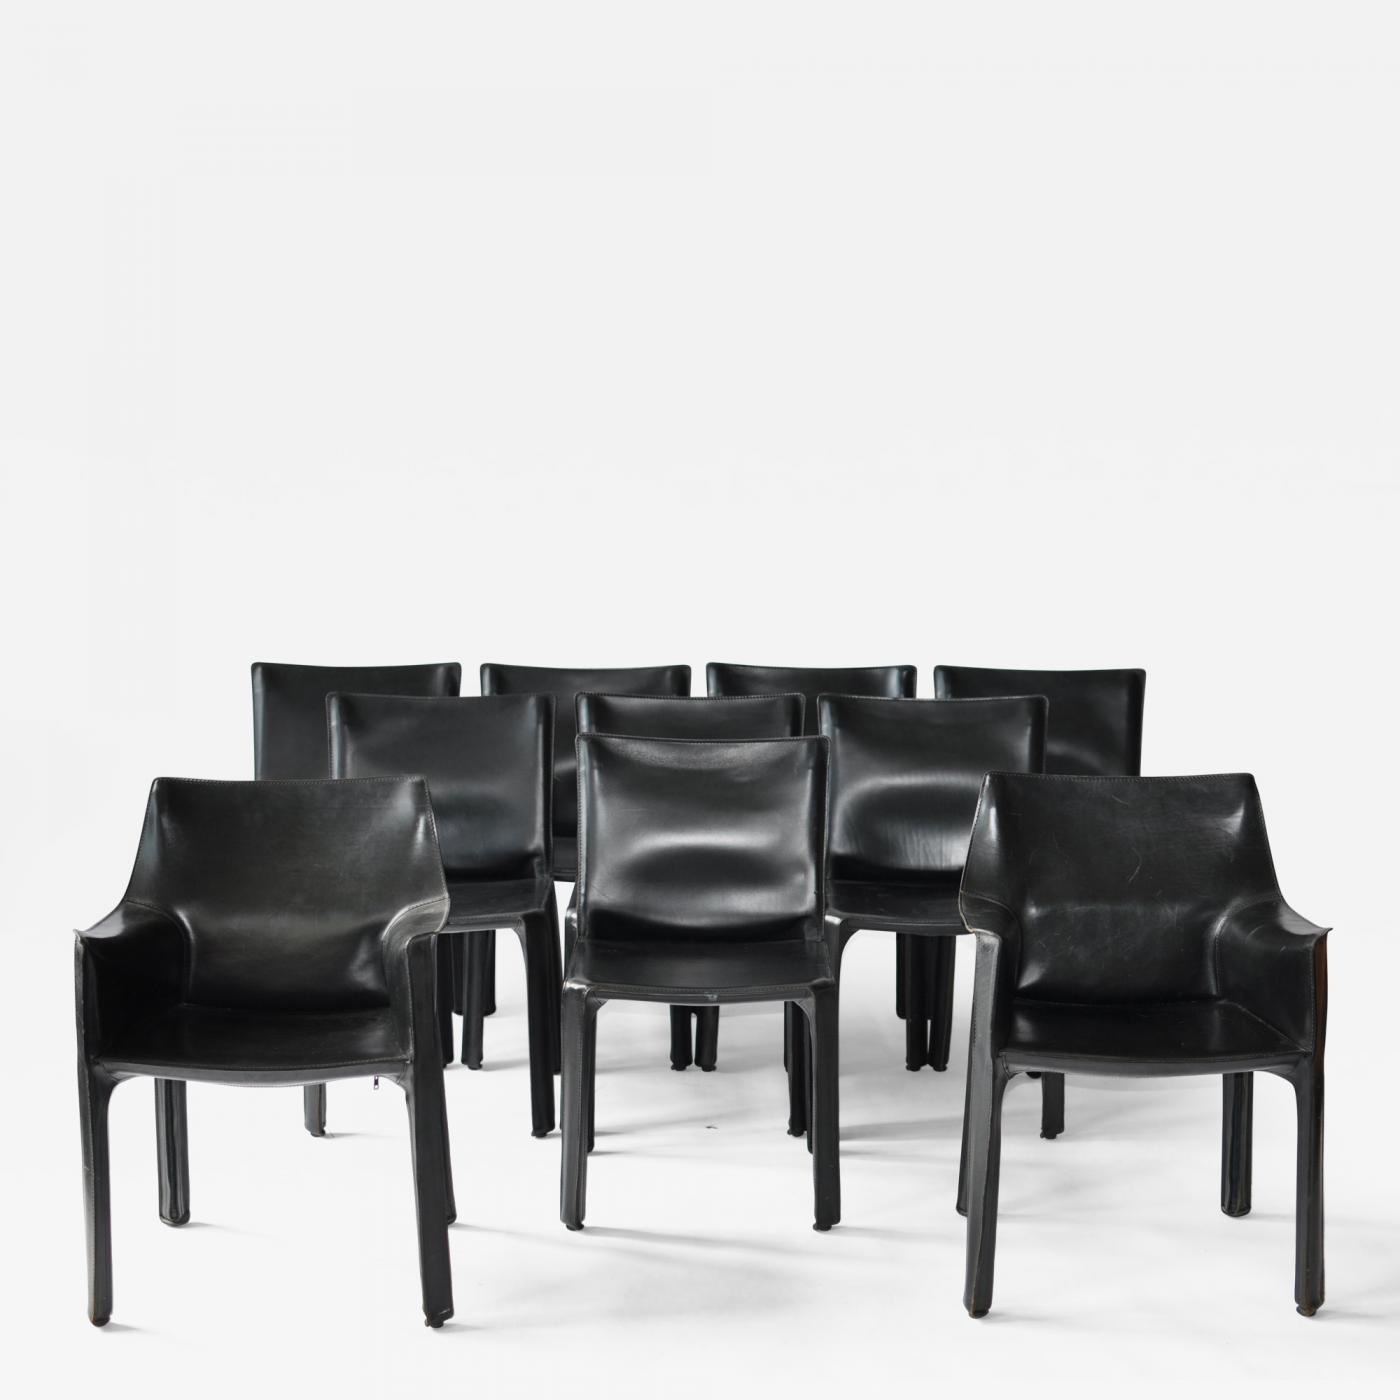 Terrific Mario Bellini Set Of Ten Black Leather Cab Chairs By Mario Bellini For Cassina Ocoug Best Dining Table And Chair Ideas Images Ocougorg